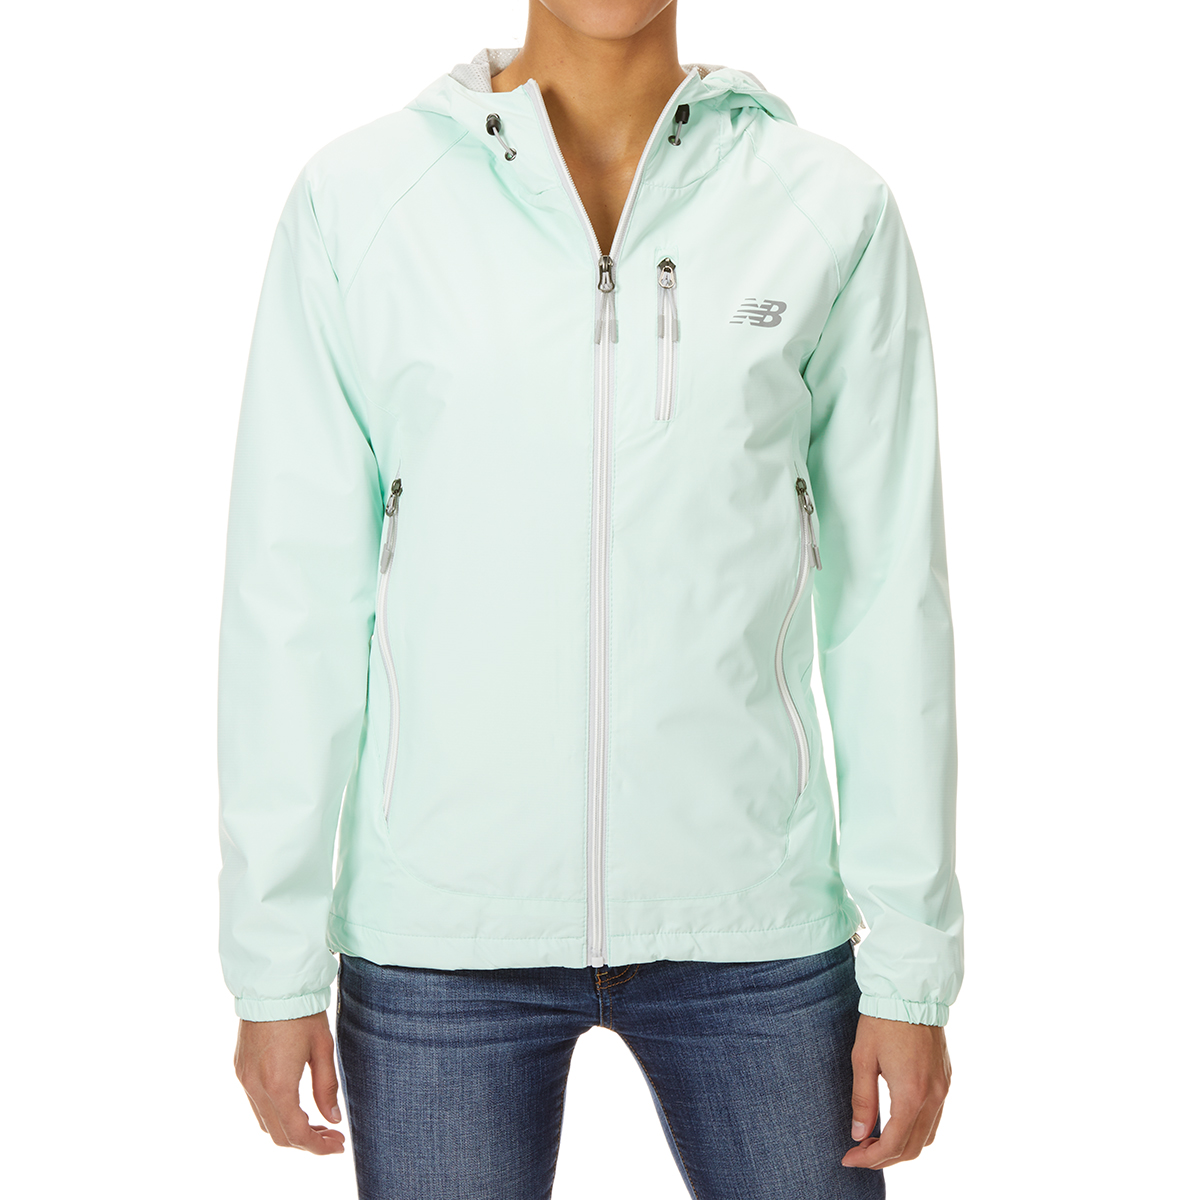 New Balance Women's Solid Id Dobby Hooded Jacket With Chest Pocket - Green, XL